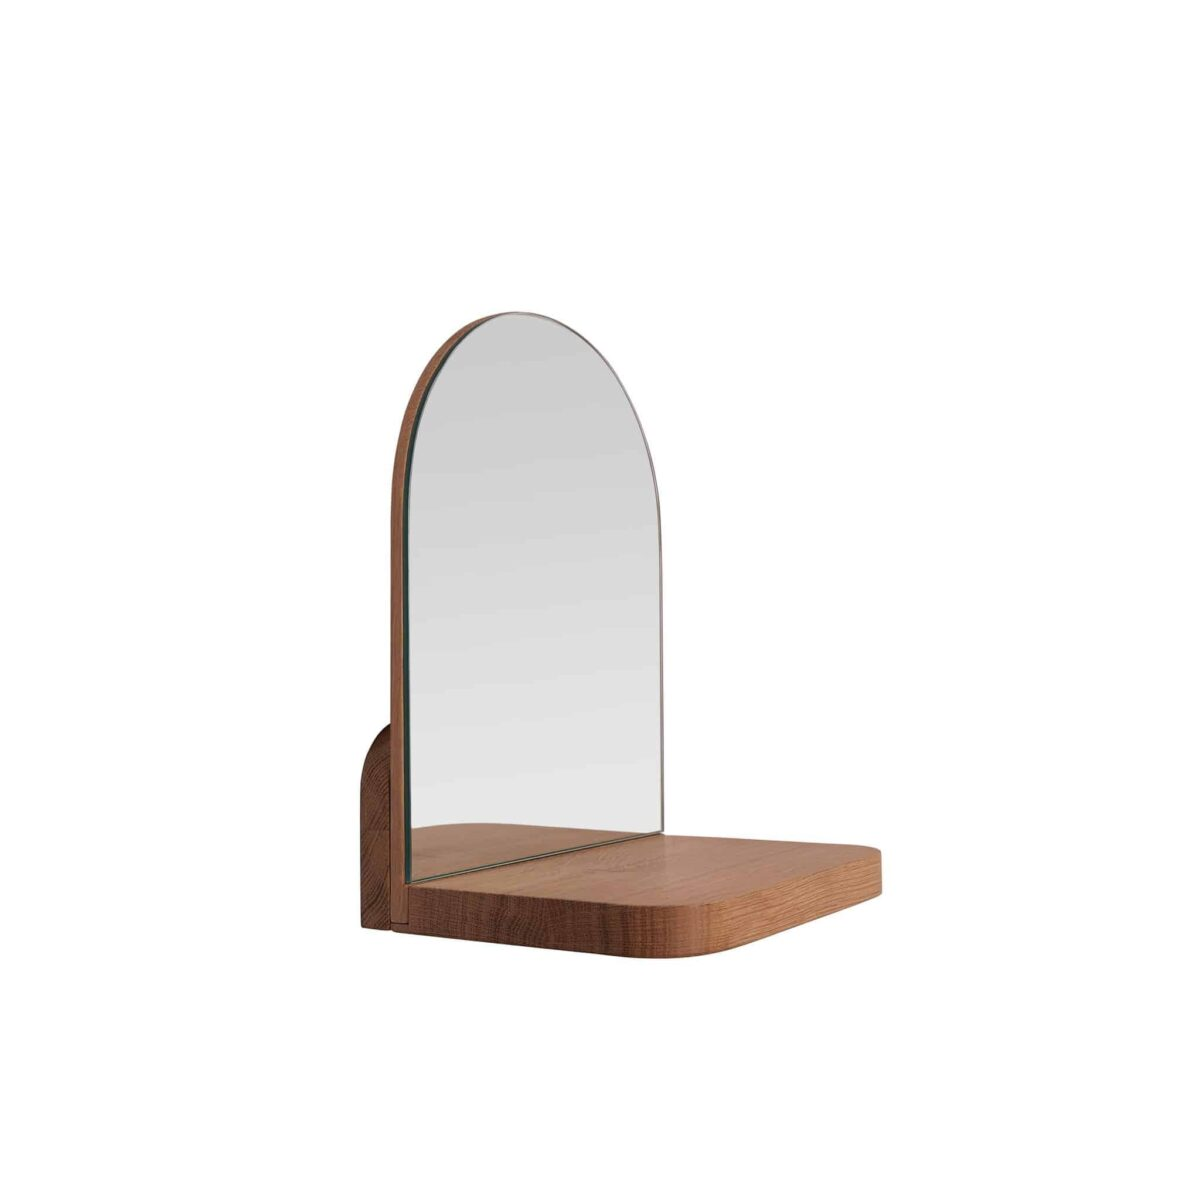 Landscape_product_semley_mirror.jpg